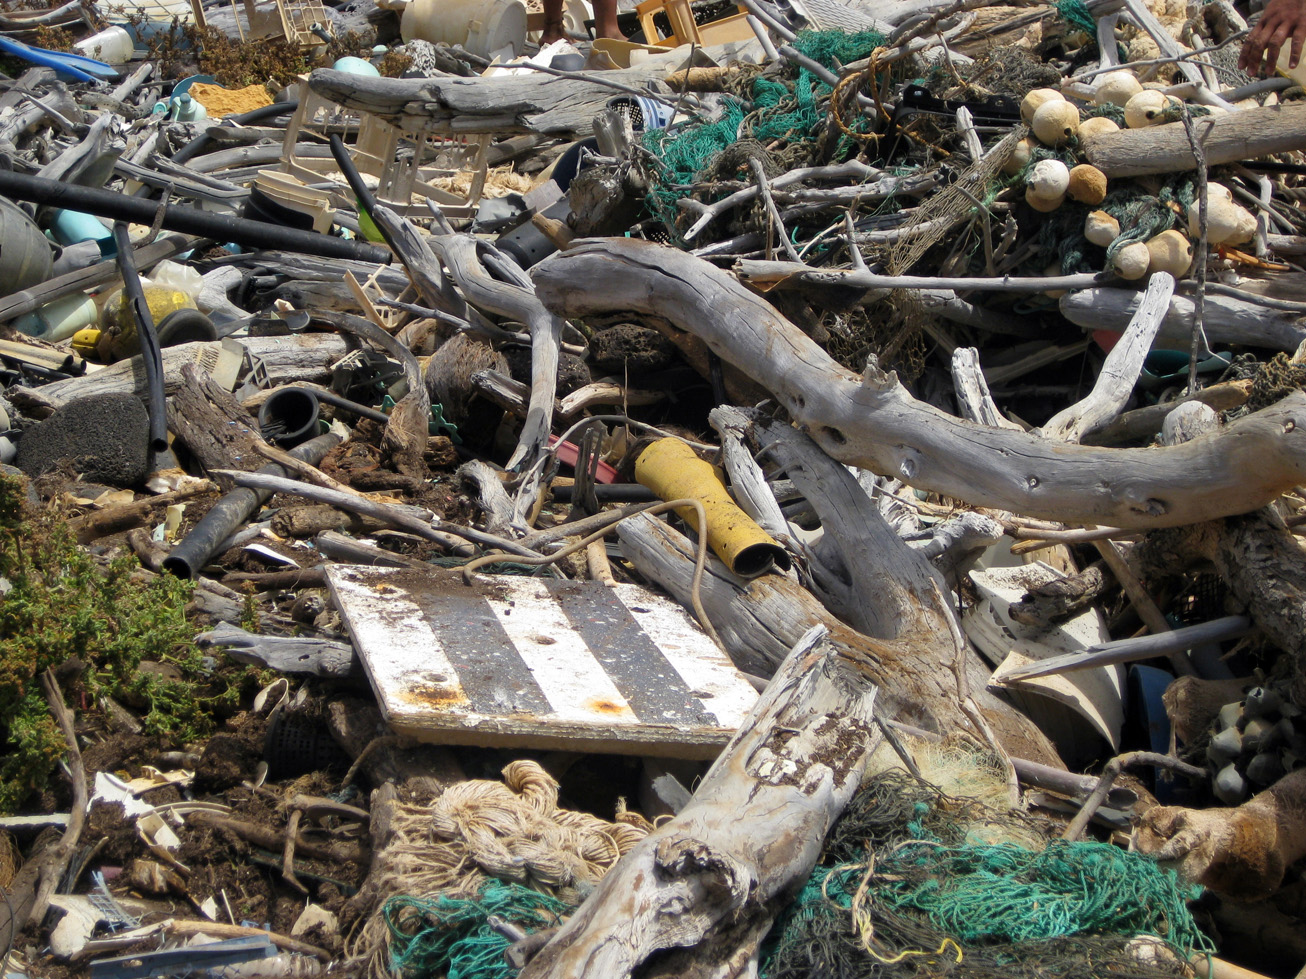 Marine debris and driftwood on Hawaii beach.